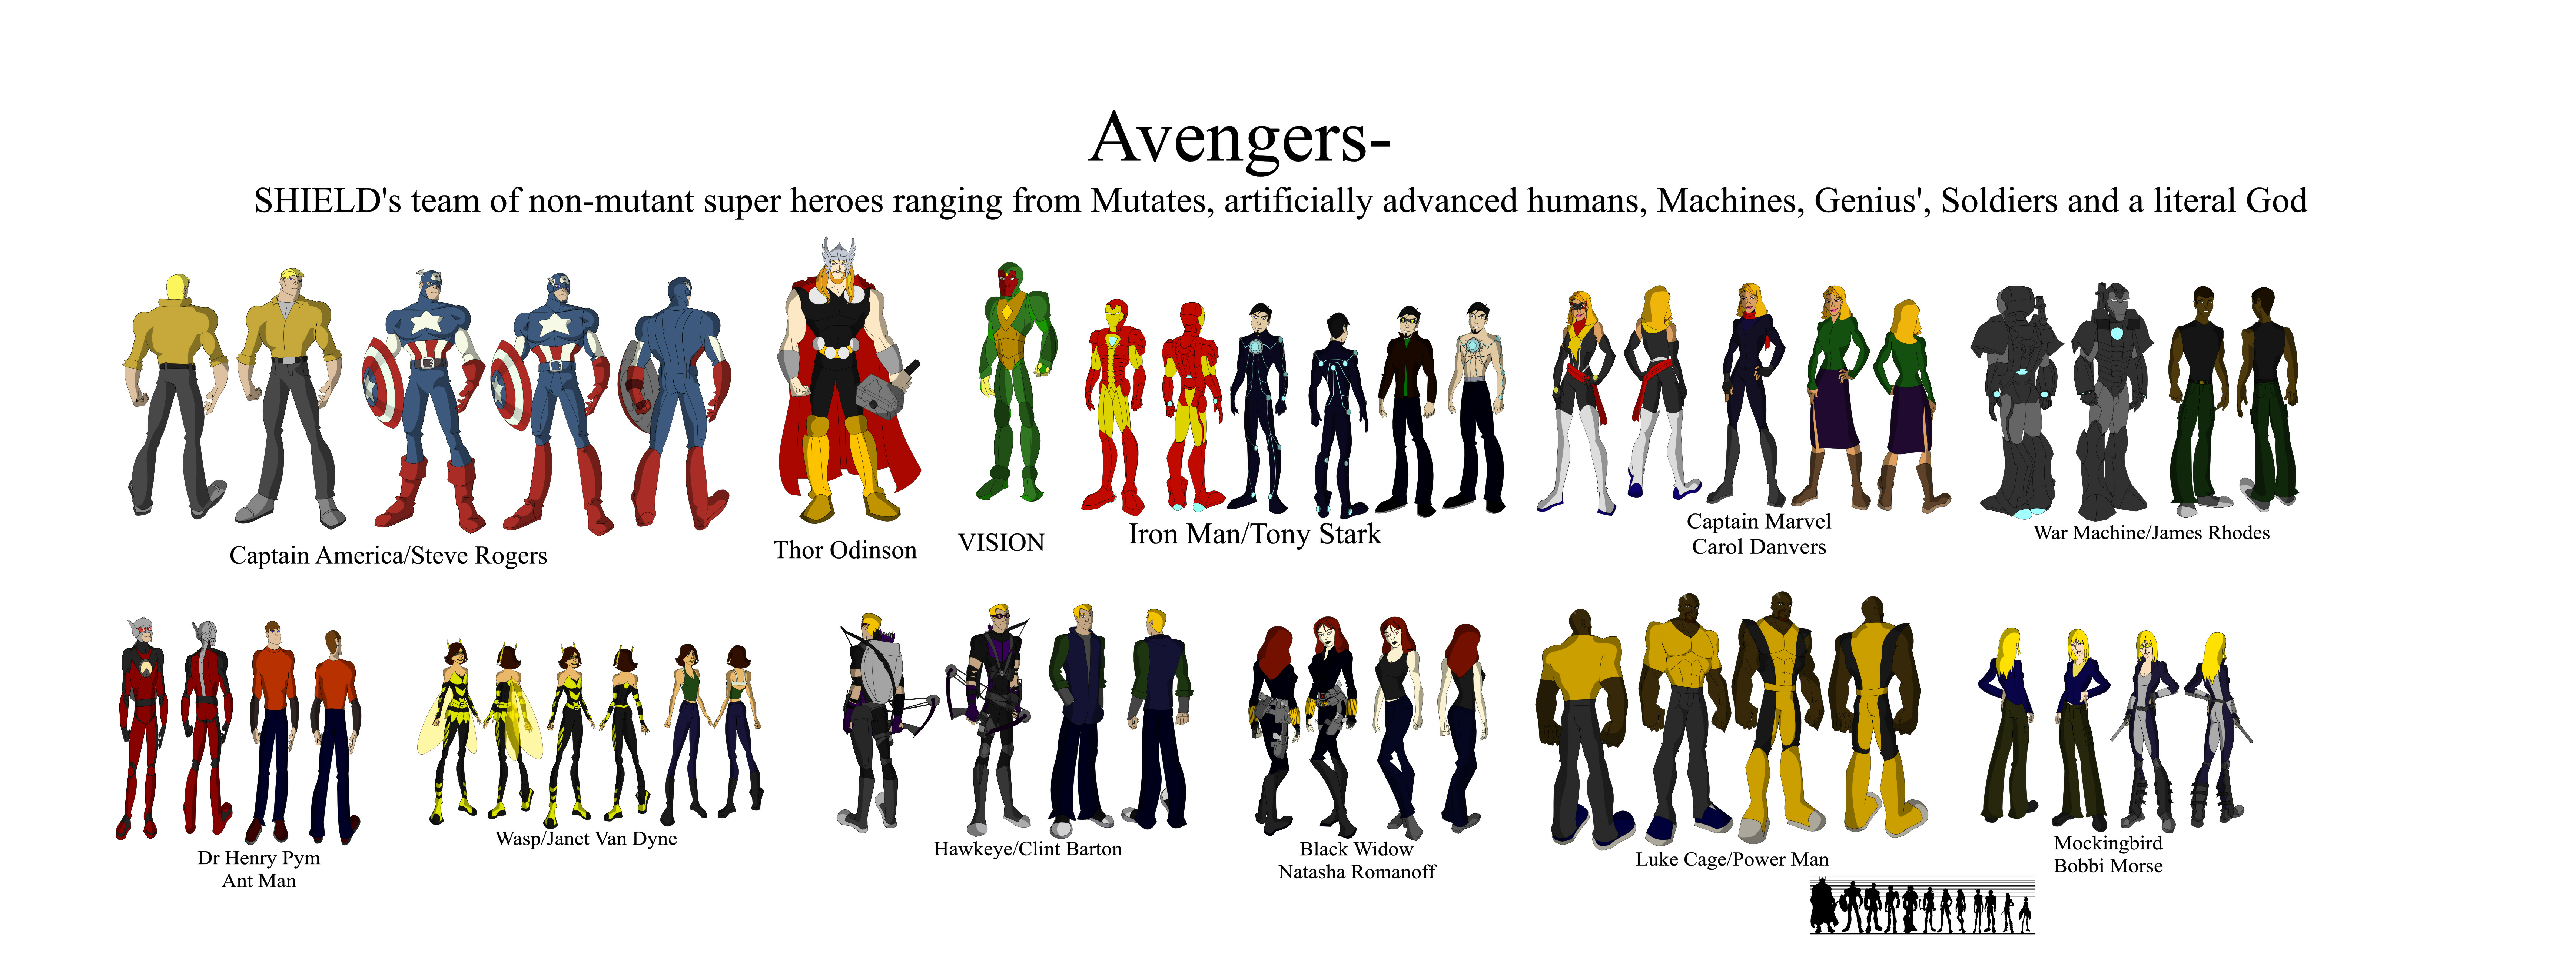 The Avengers Computer Wallpapers Desktop Backgrounds 6952x2597 ID 6952x2597